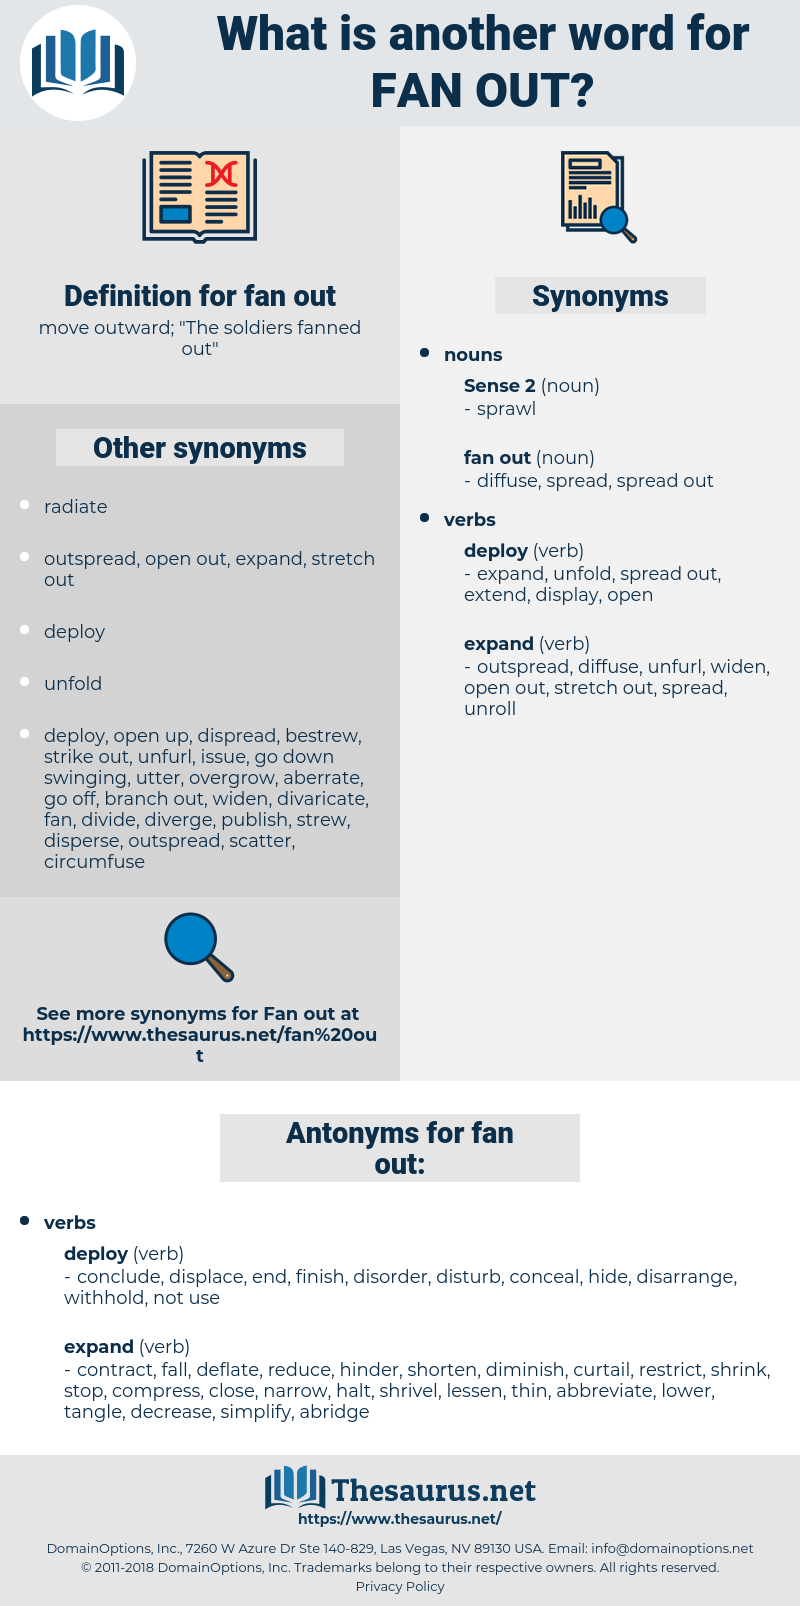 fan out, synonym fan out, another word for fan out, words like fan out, thesaurus fan out